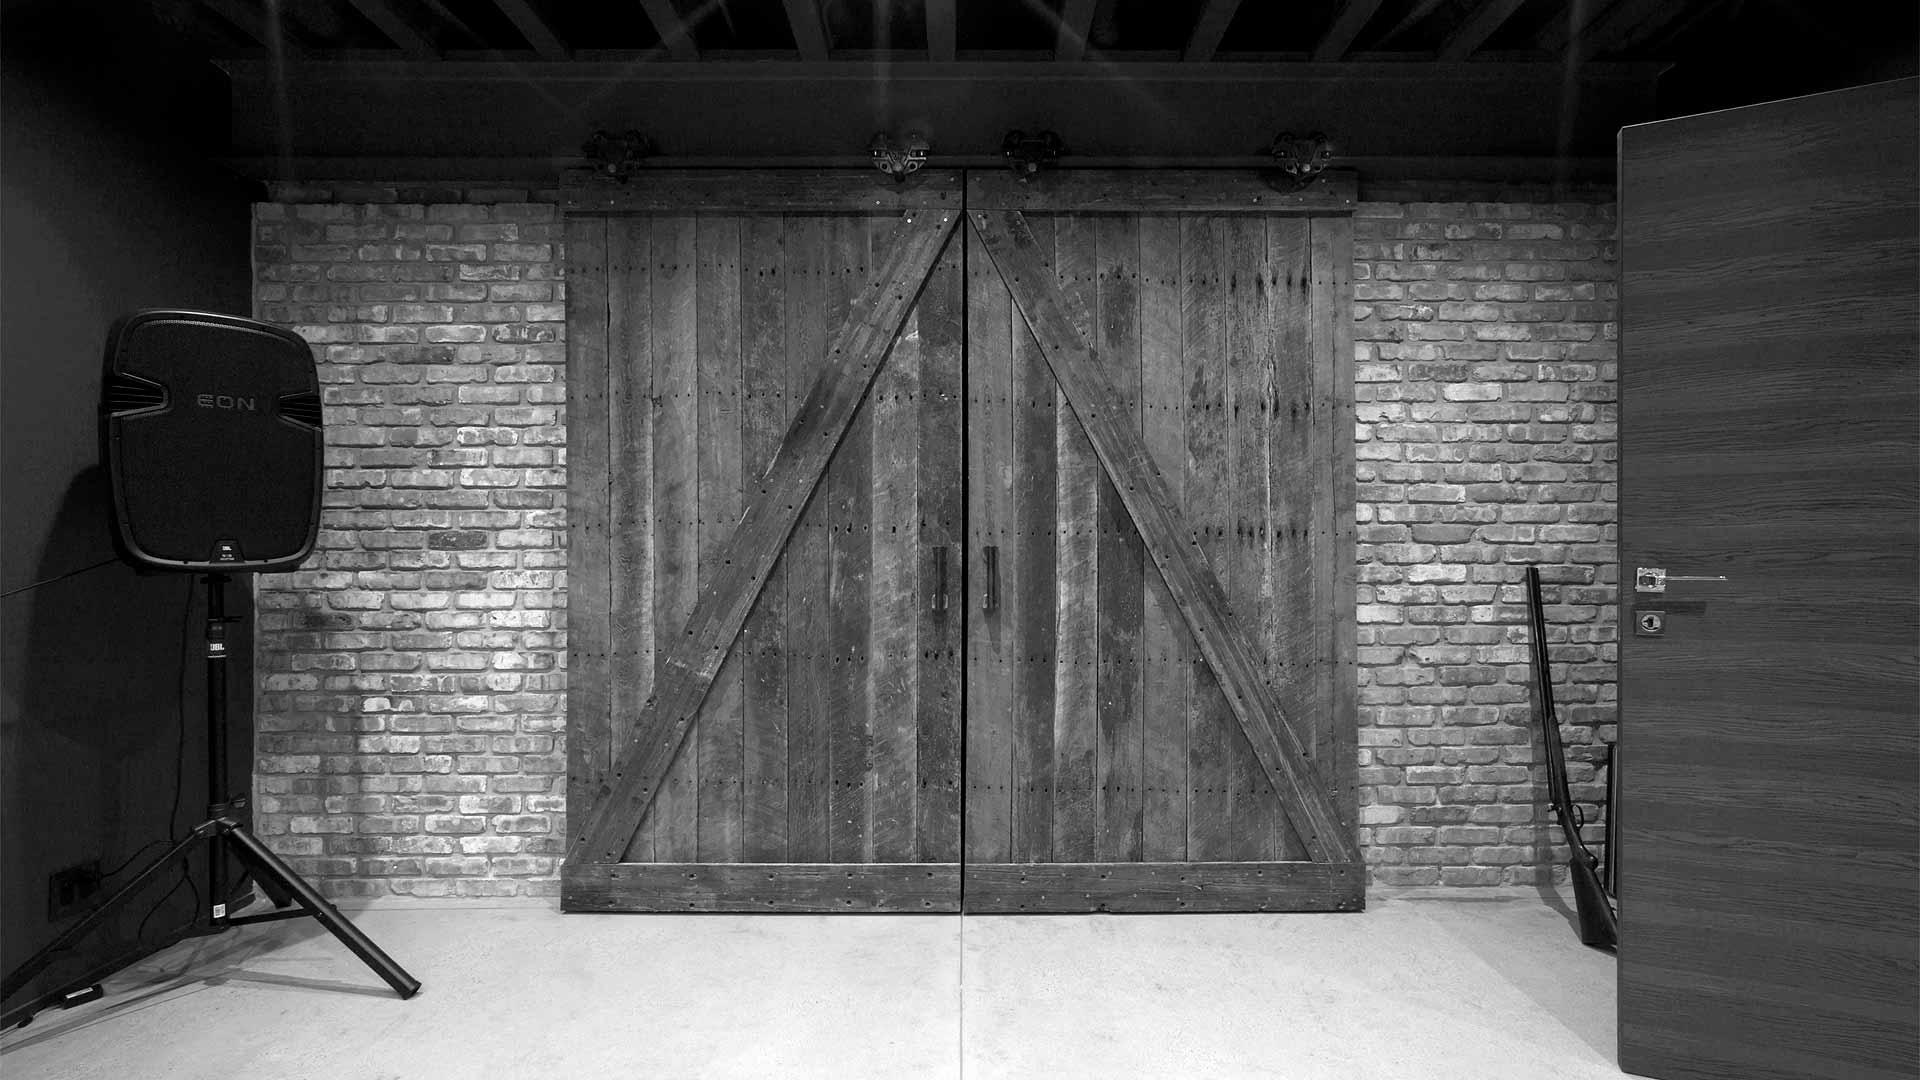 Reclaimed barn doors and hardware divide storage and studio - Minimalist Modern - Indian Head Park - Chicago, Illinois - HAUS | Architecture For Modern Lifestyles, Christopher Short, Indianapolis Architect with Joe Trojanowski